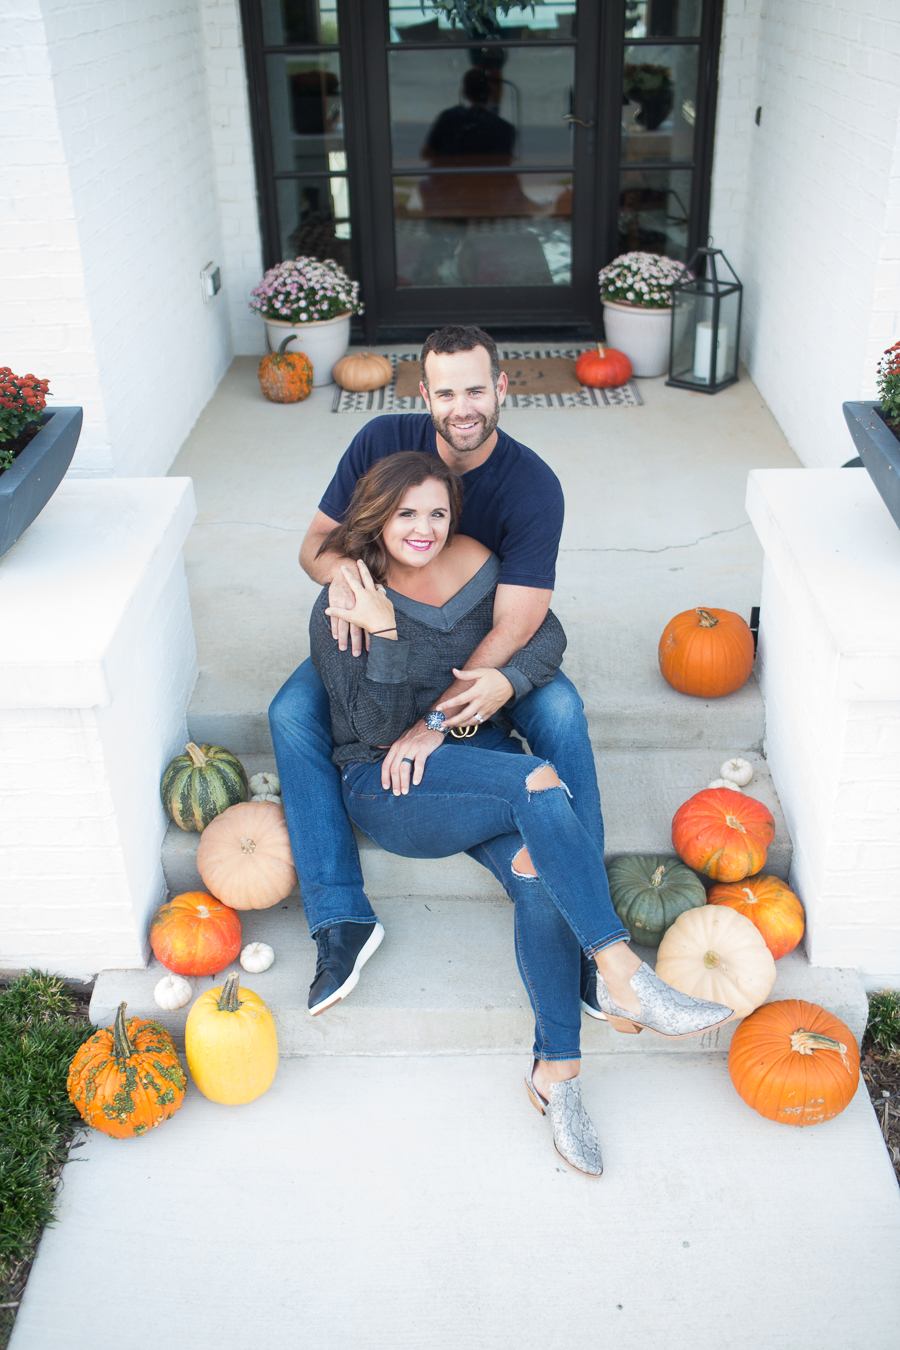 Loveliest Looks of Fall Home Tour Beautiful Fall Home Decor and Fall Fashion Ideas couple who does renovations and design sitting on the front steps of their fall front porch surrounded by pumpkins with the wife wearing old navy rockstar jeans and and off the shoulder gray top and snake skin boots and the husband wearing jeans and a navy shirt and navy cole hahn shoes